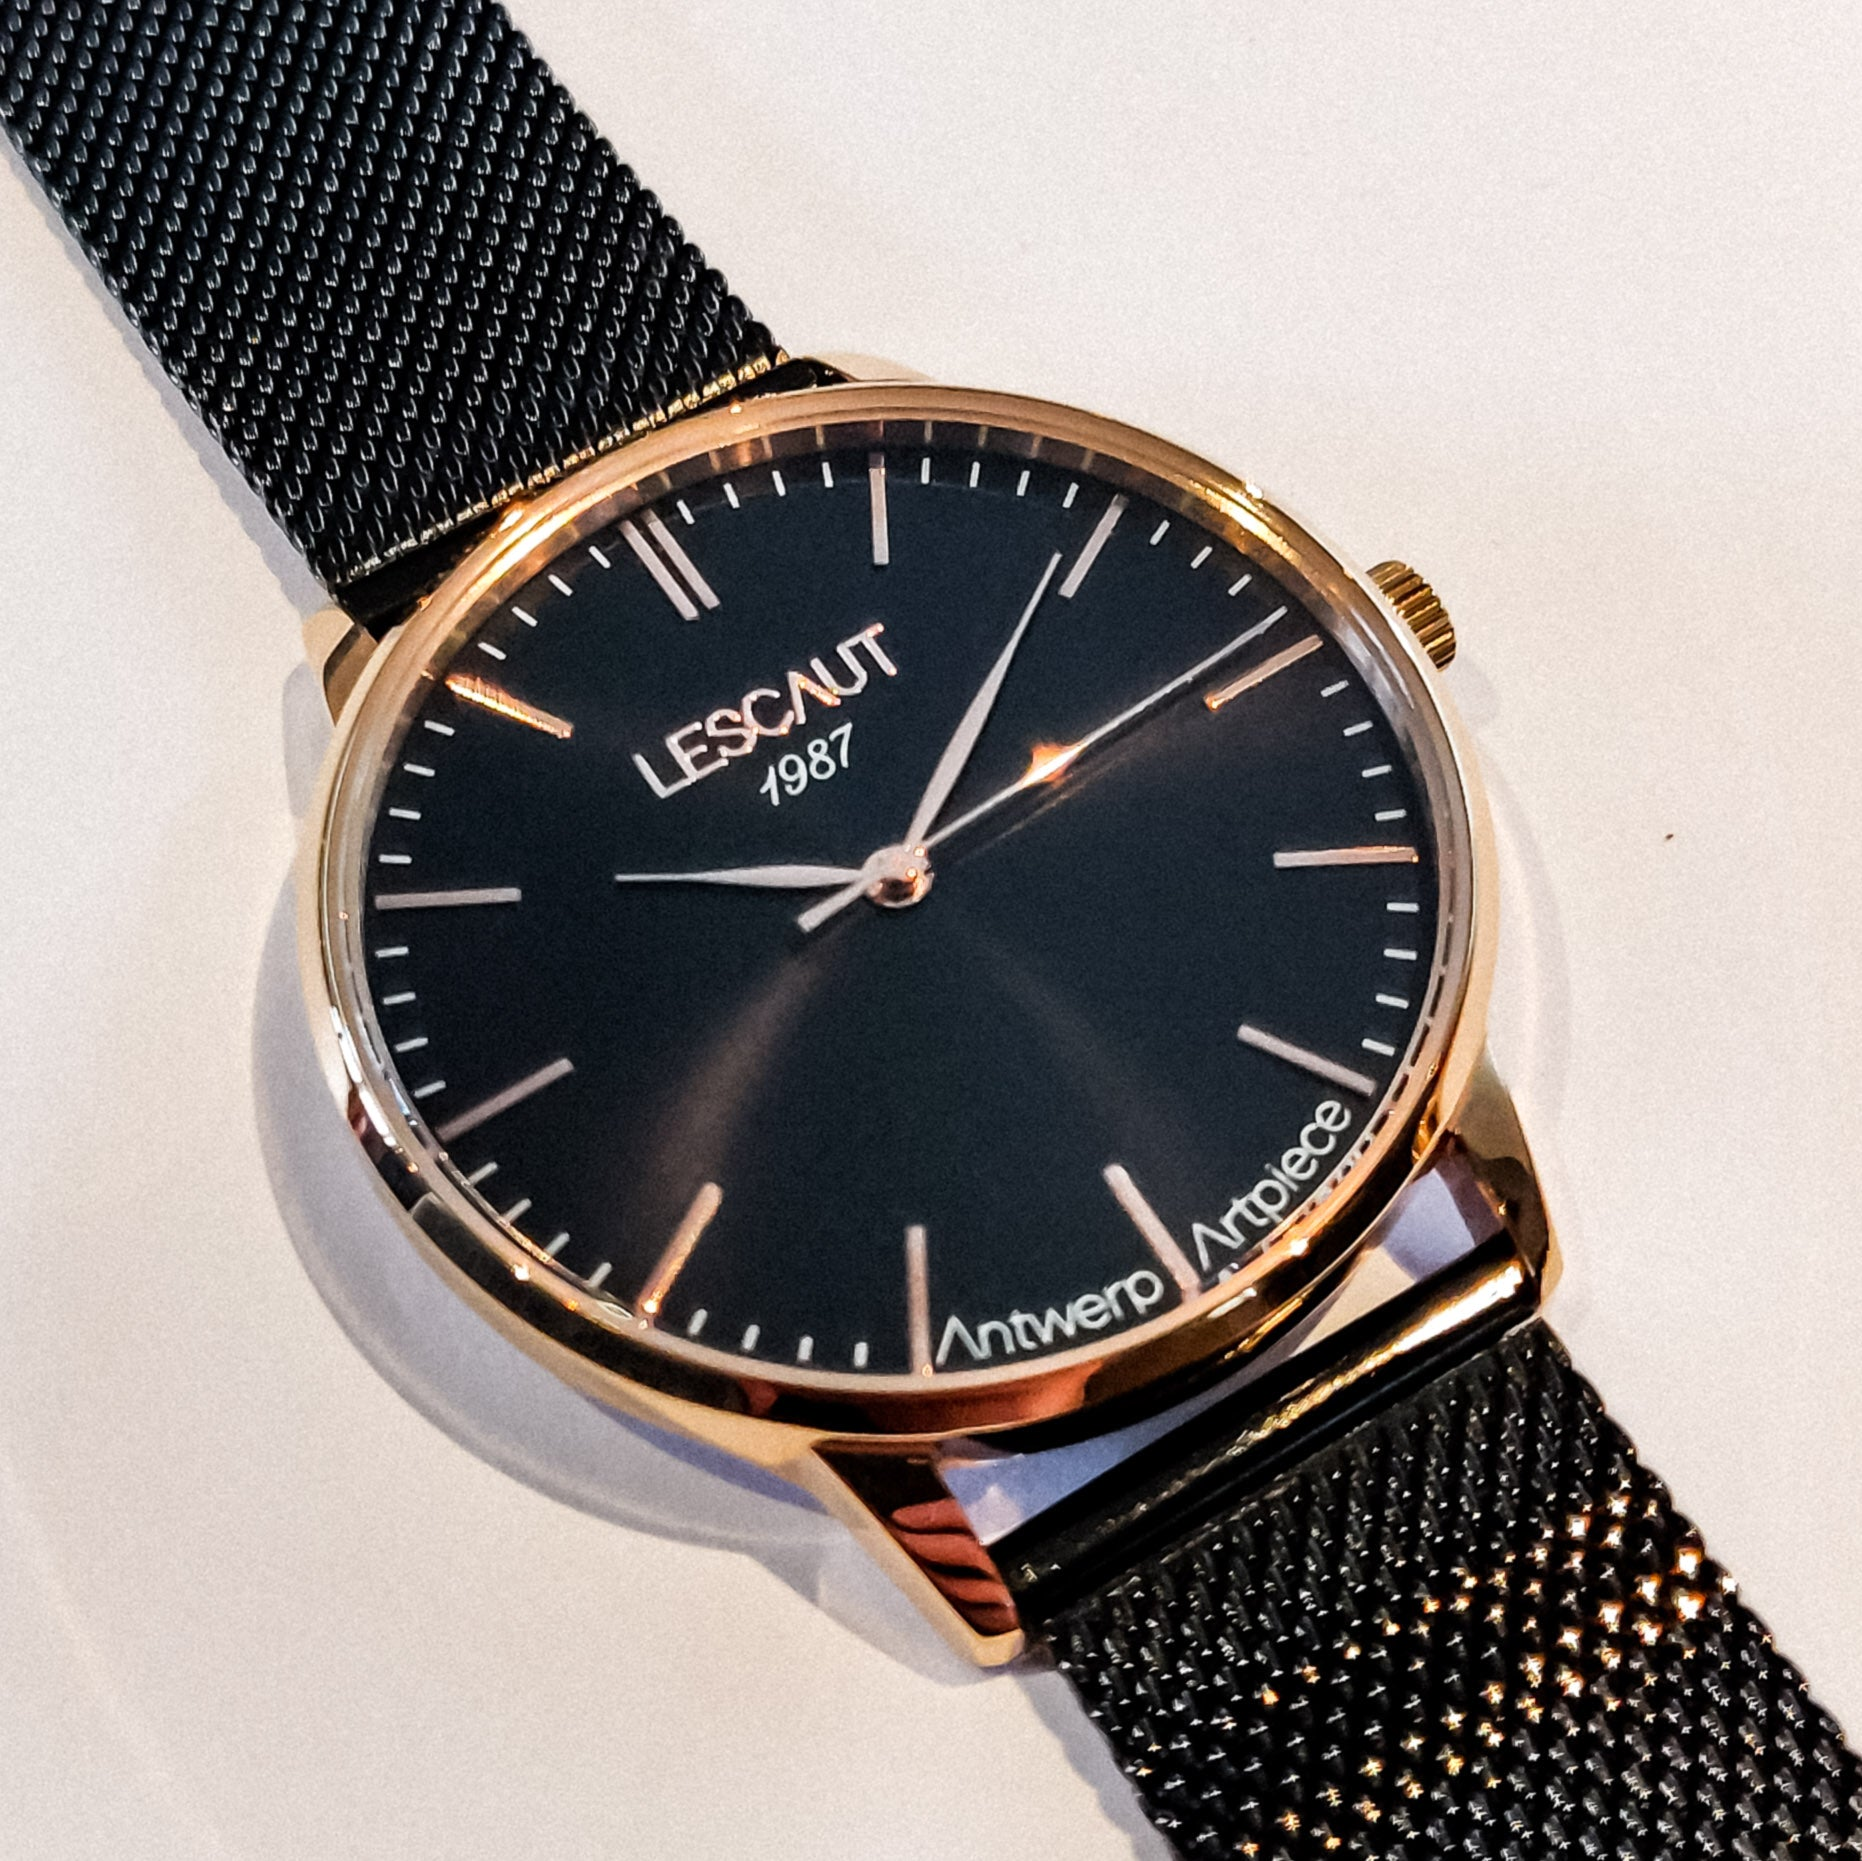 LESCAUT horloge the pink mavin close-up quartz zwarte wijzerplaat roze gouden horlogekast zwart staal Milanese bandje pink gold case deep black dial black steel mesh watch strap